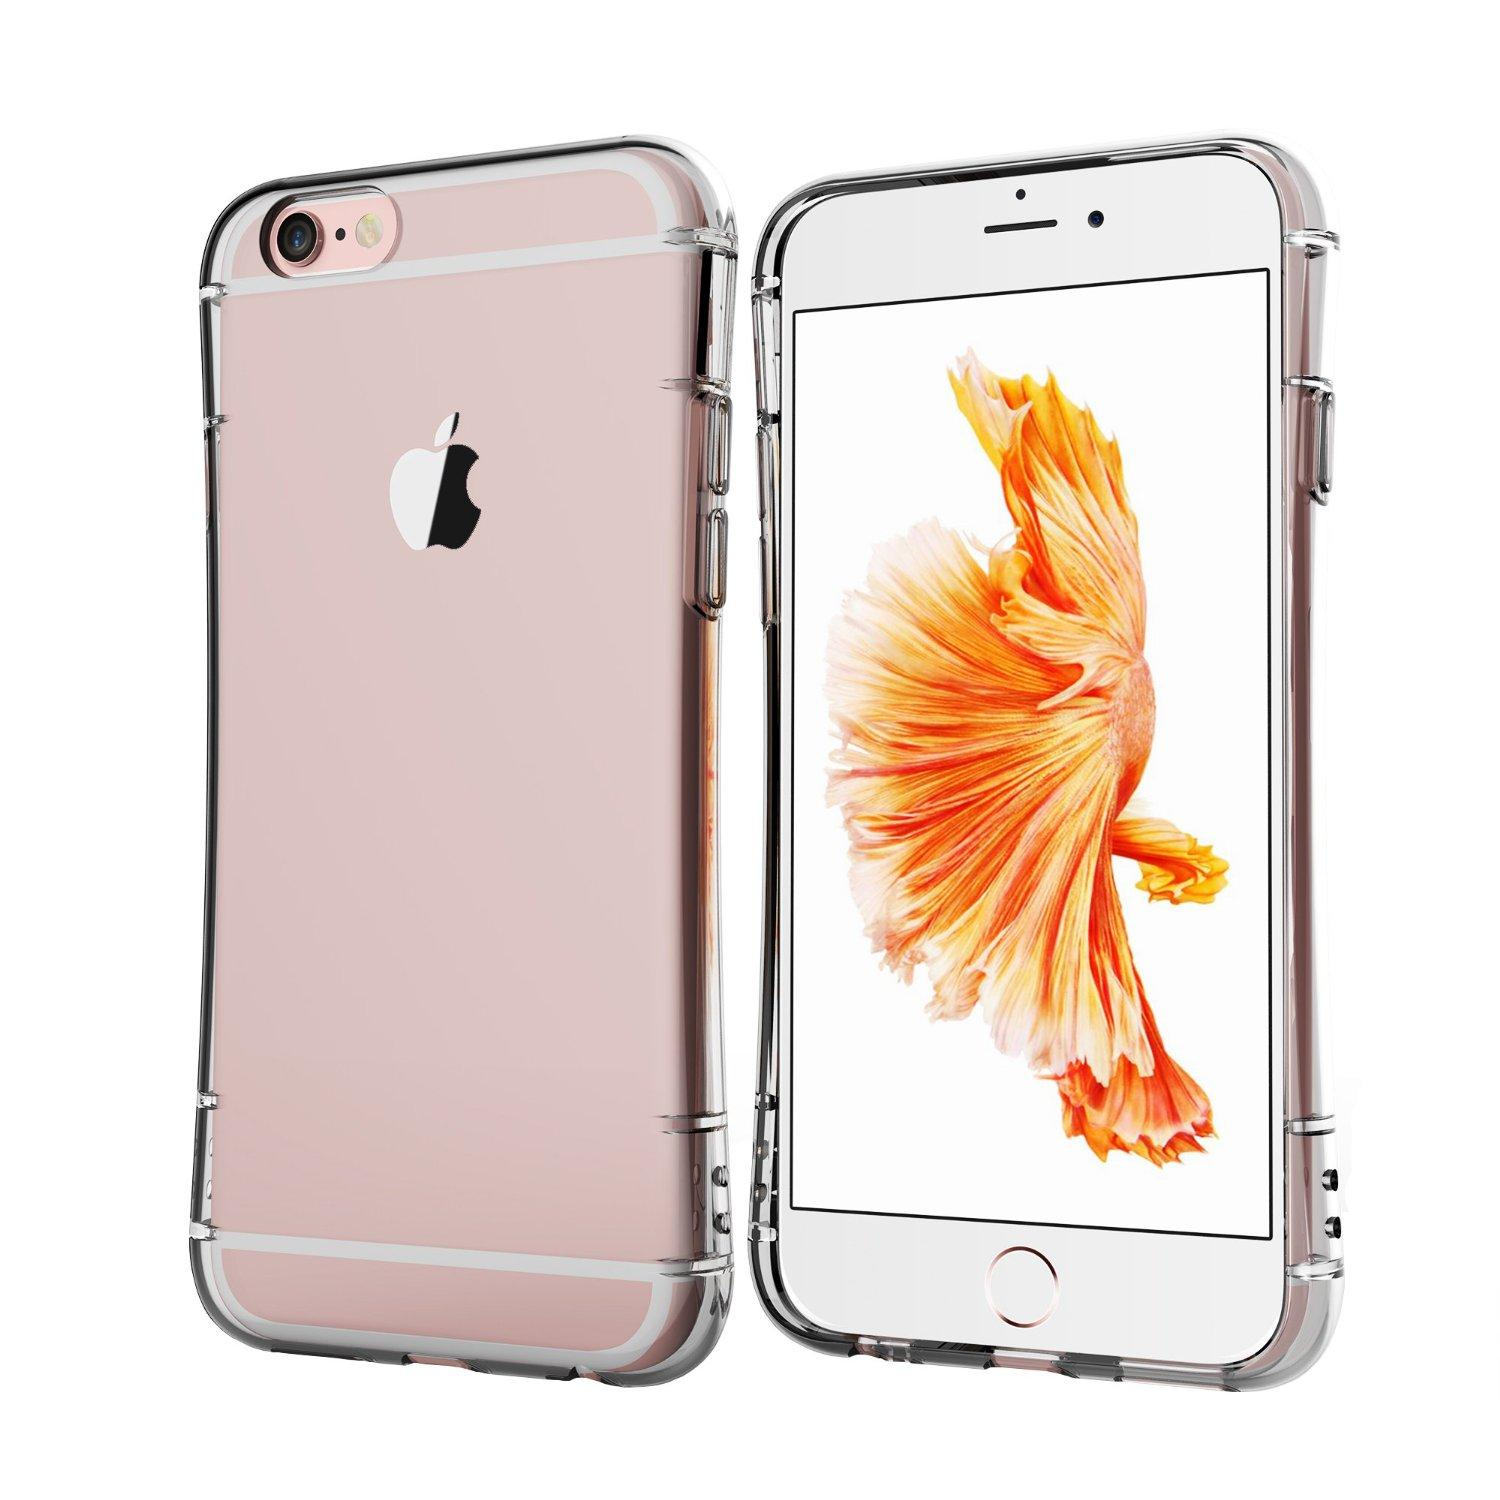 doopoo [AIR CUSHION] Clear iPhone 6/6s Case